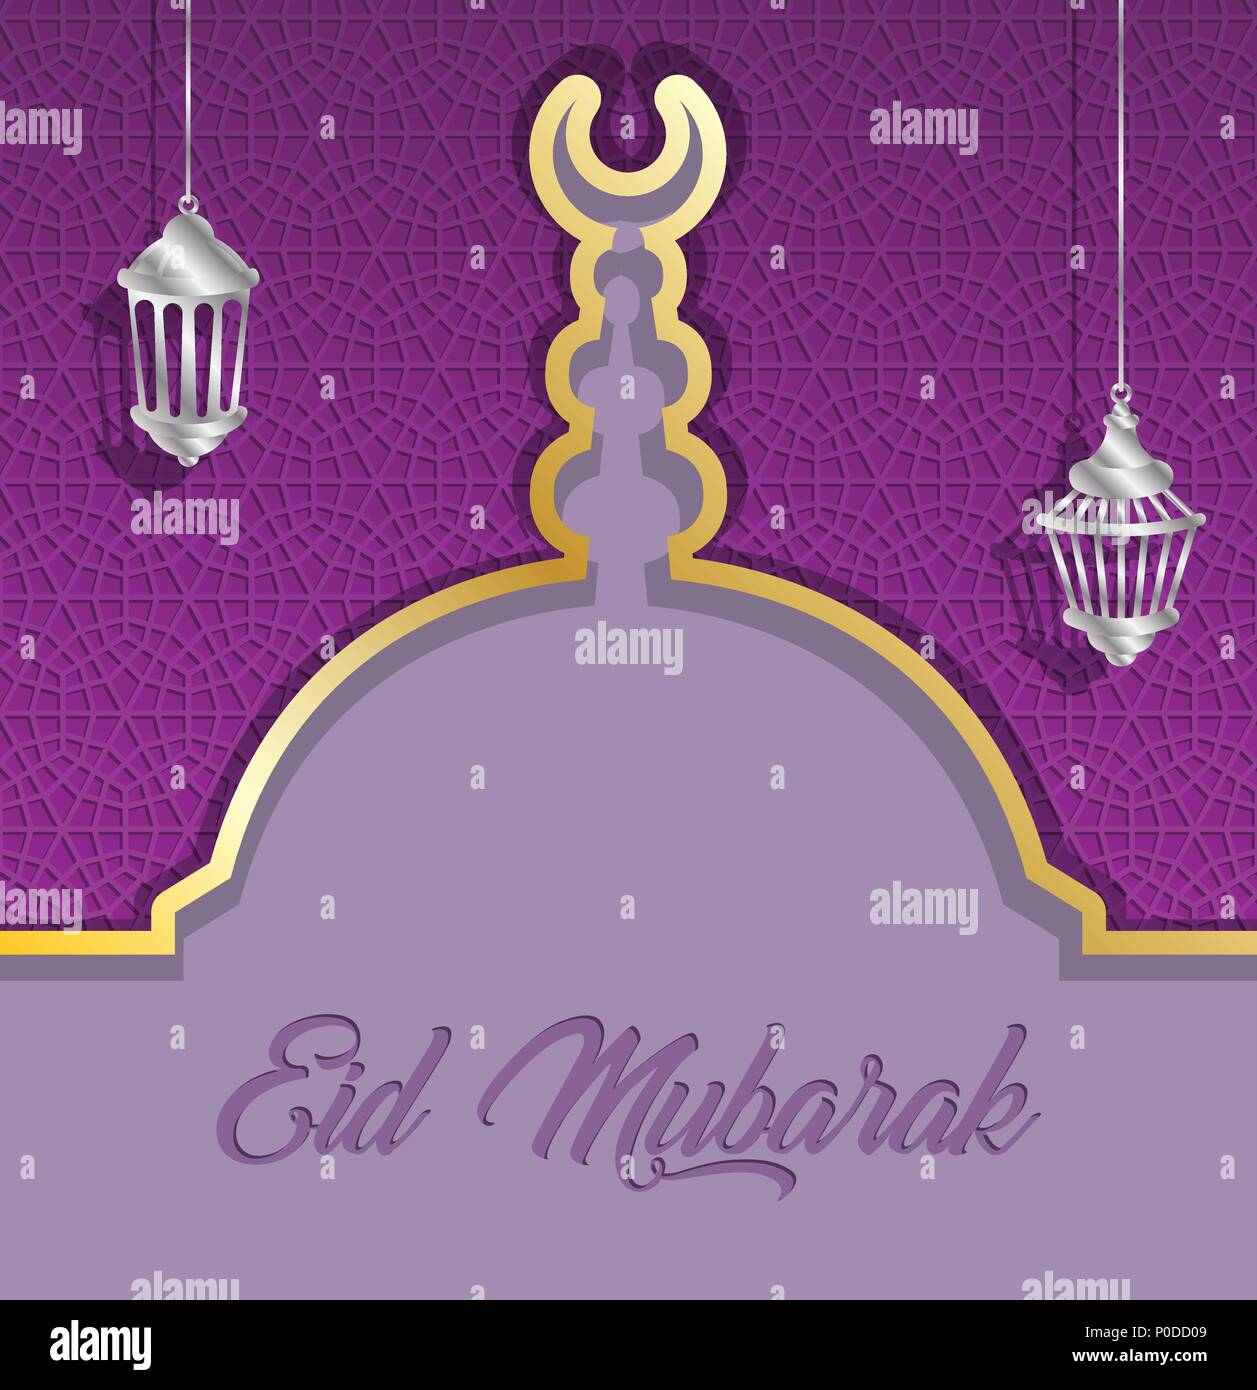 Eid mubarak greeting card with mosque dome and ramadan lanterns all eid mubarak greeting card with mosque dome and ramadan lanterns all the objects are in different layers and the text types do not need any font m4hsunfo